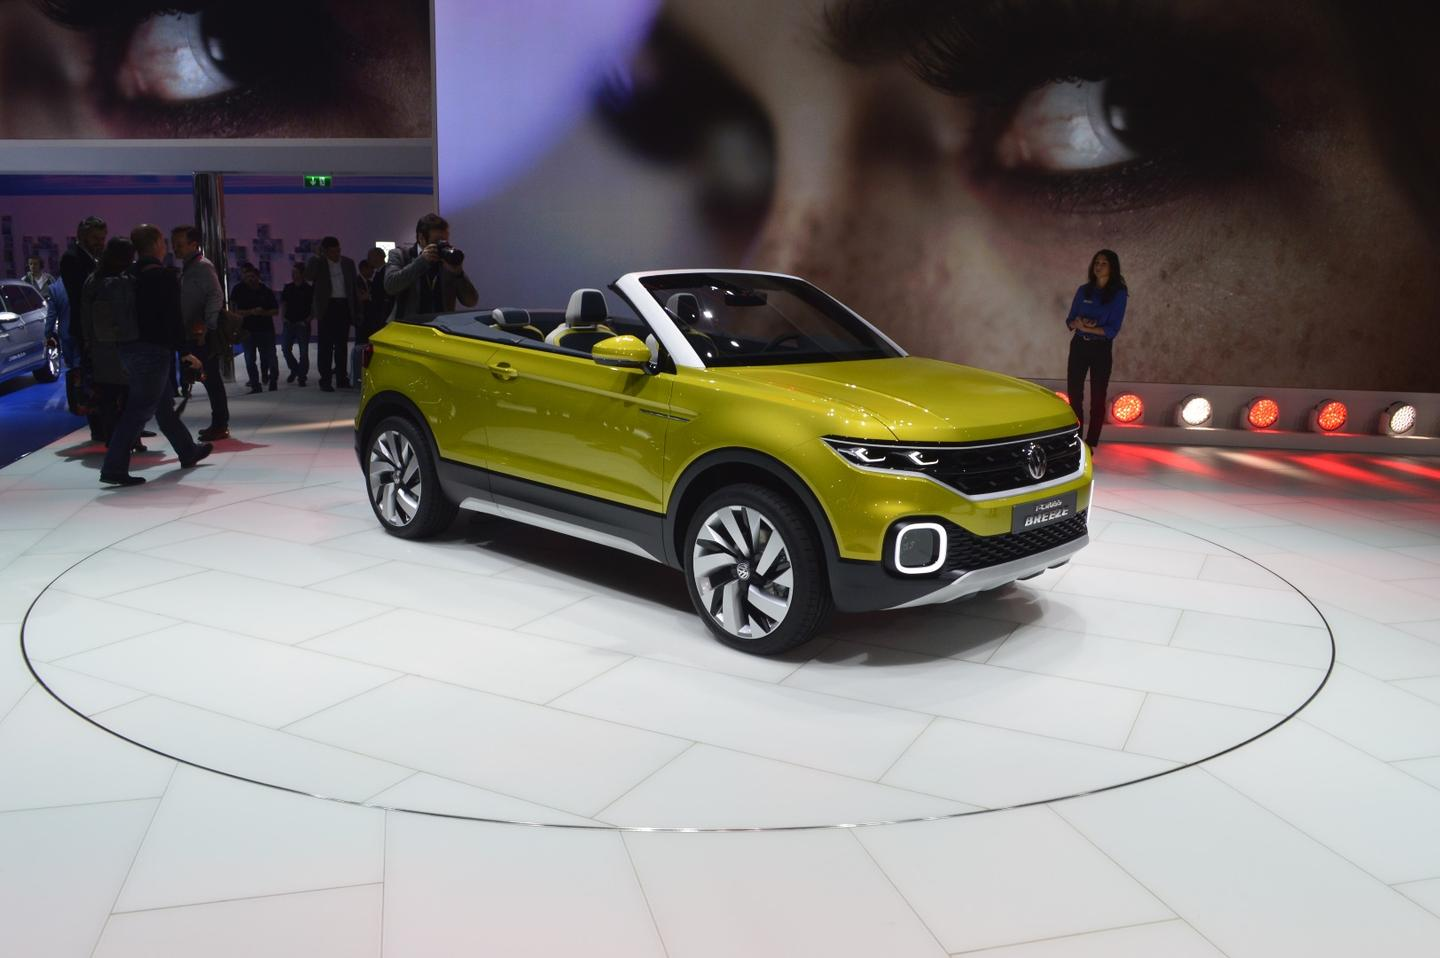 In a nutshell, the T-Cross is a downsized, two-door, convertible Tiguan